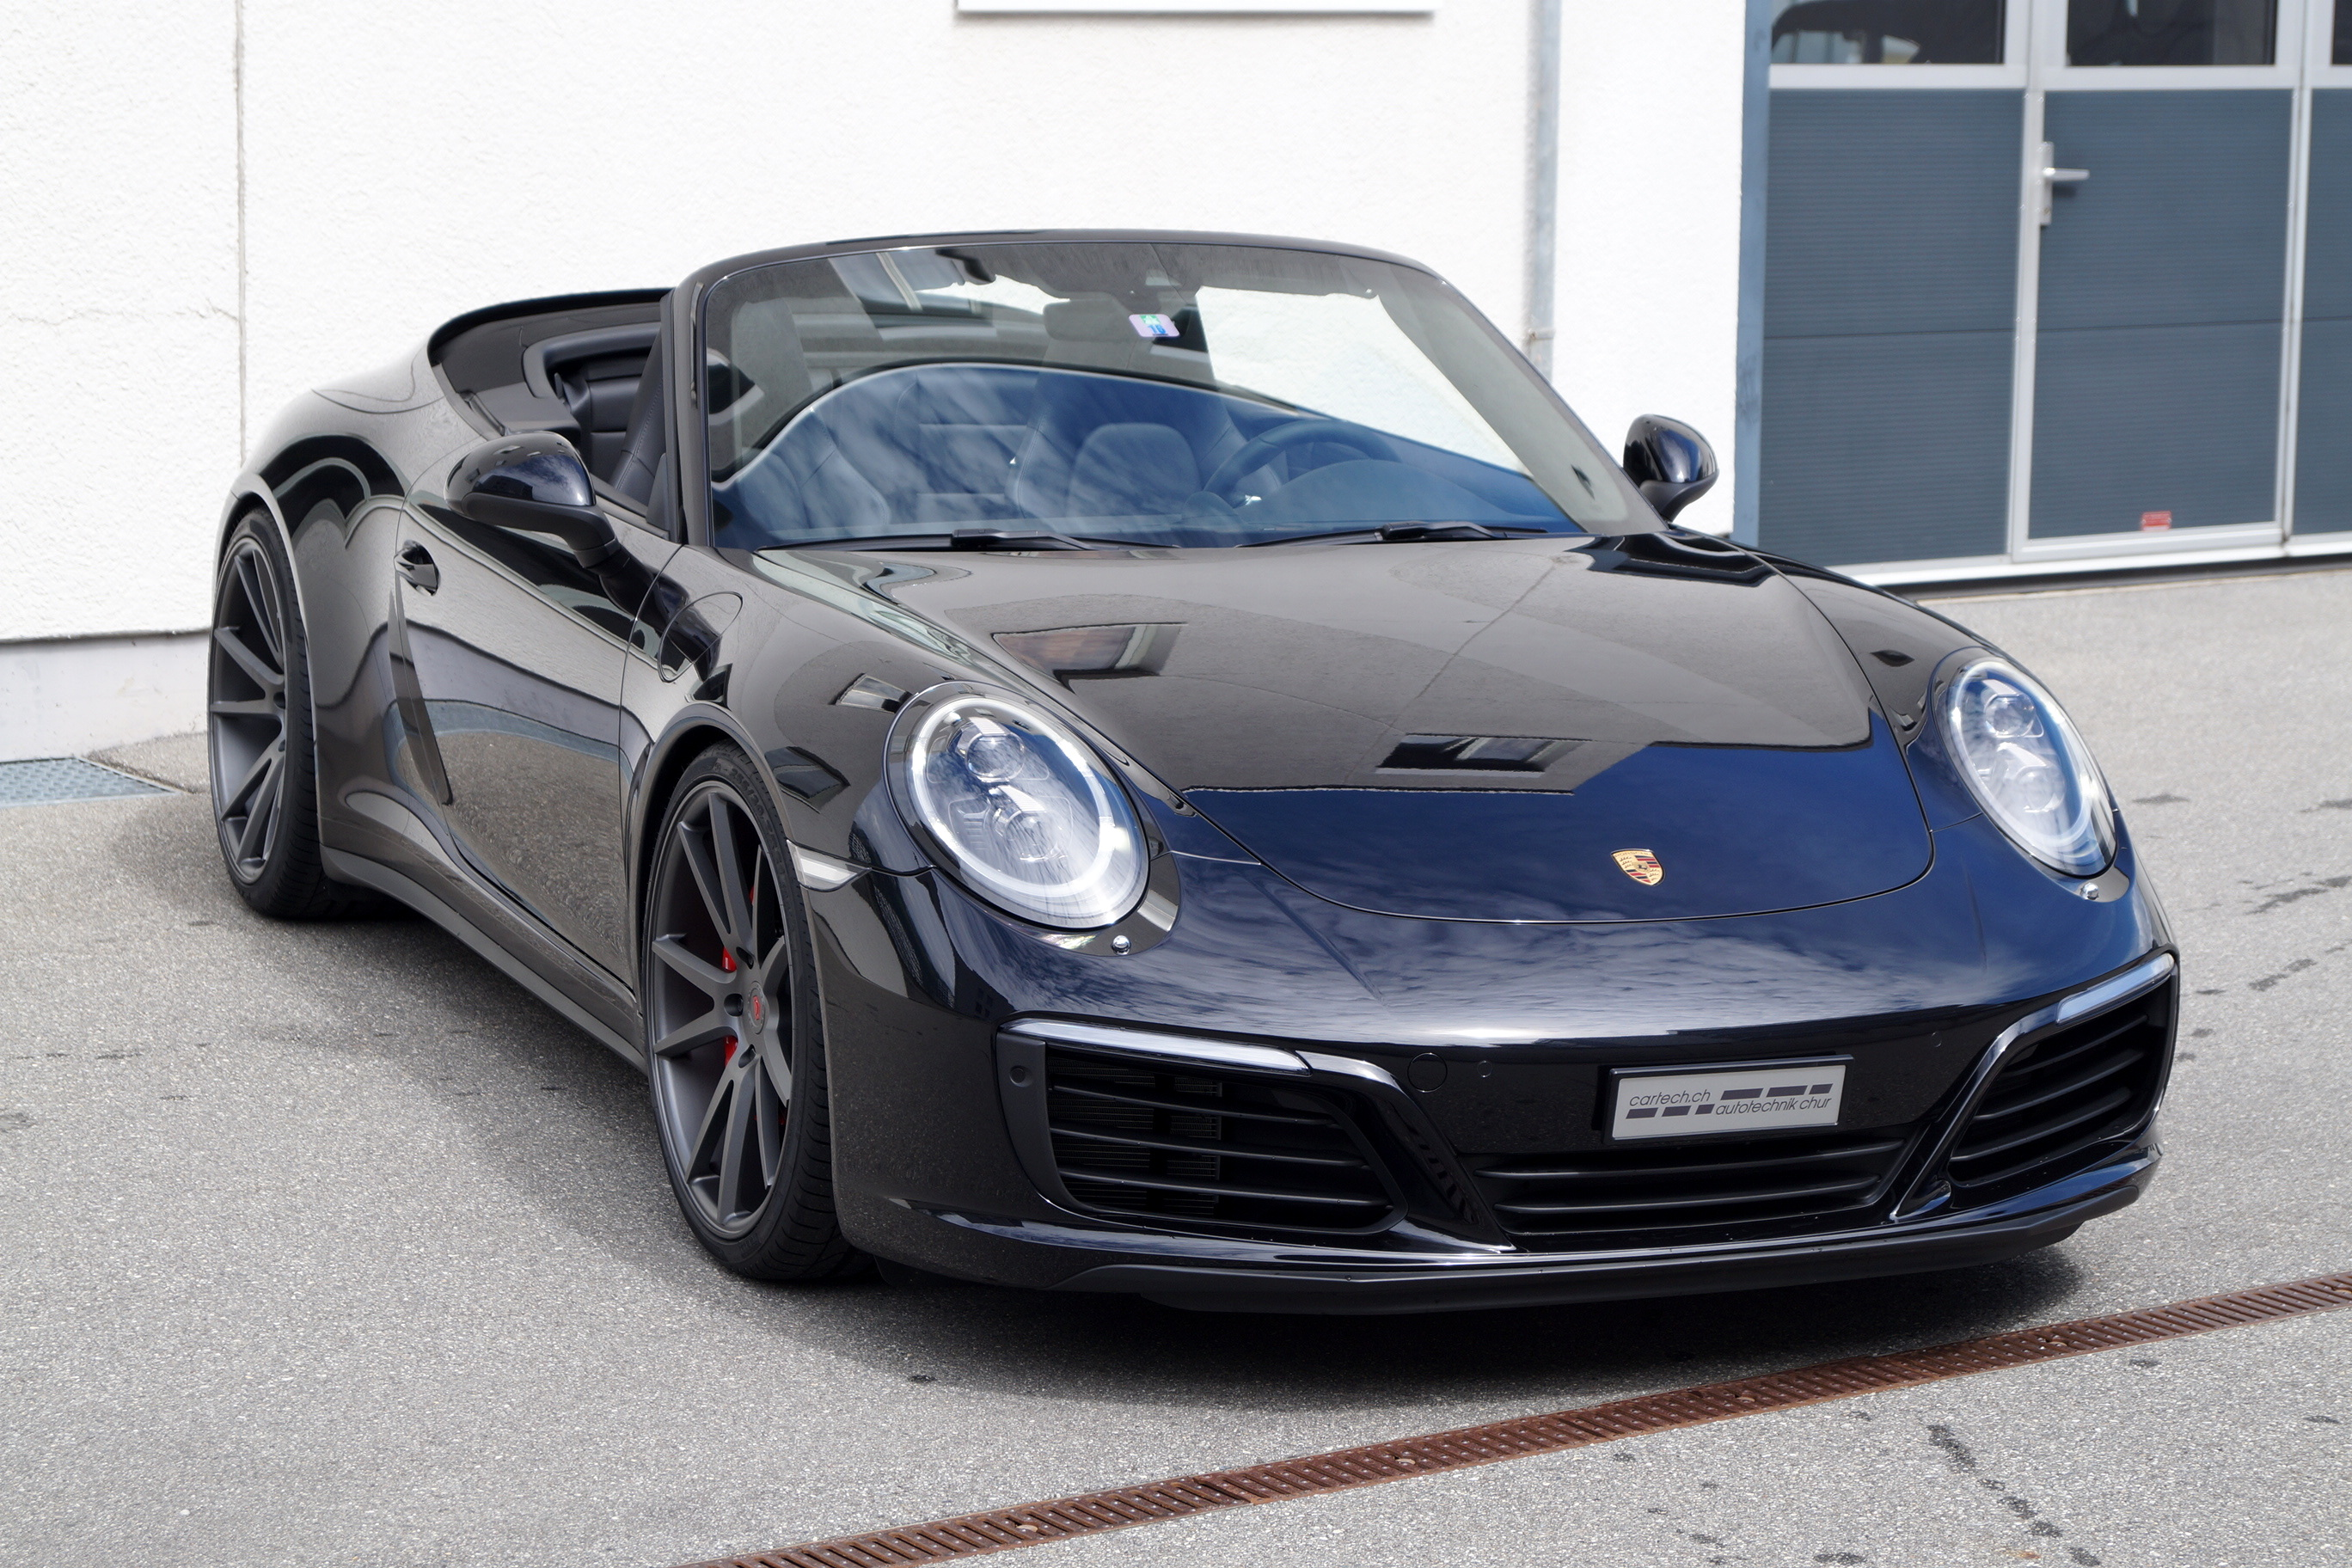 porsche 911 carrera 4s cabrio by cartech autotechnik ag chur. Black Bedroom Furniture Sets. Home Design Ideas